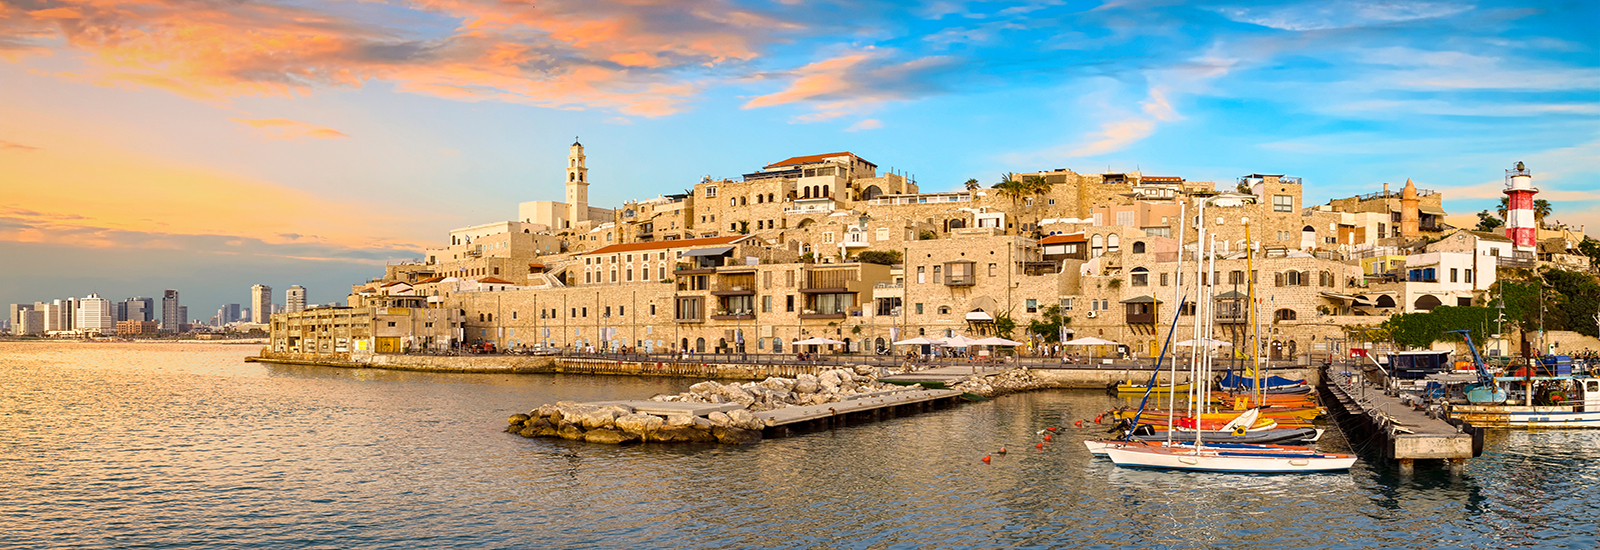 This is a stock photo. Jaffa Port in Tel Aviv, Israel.